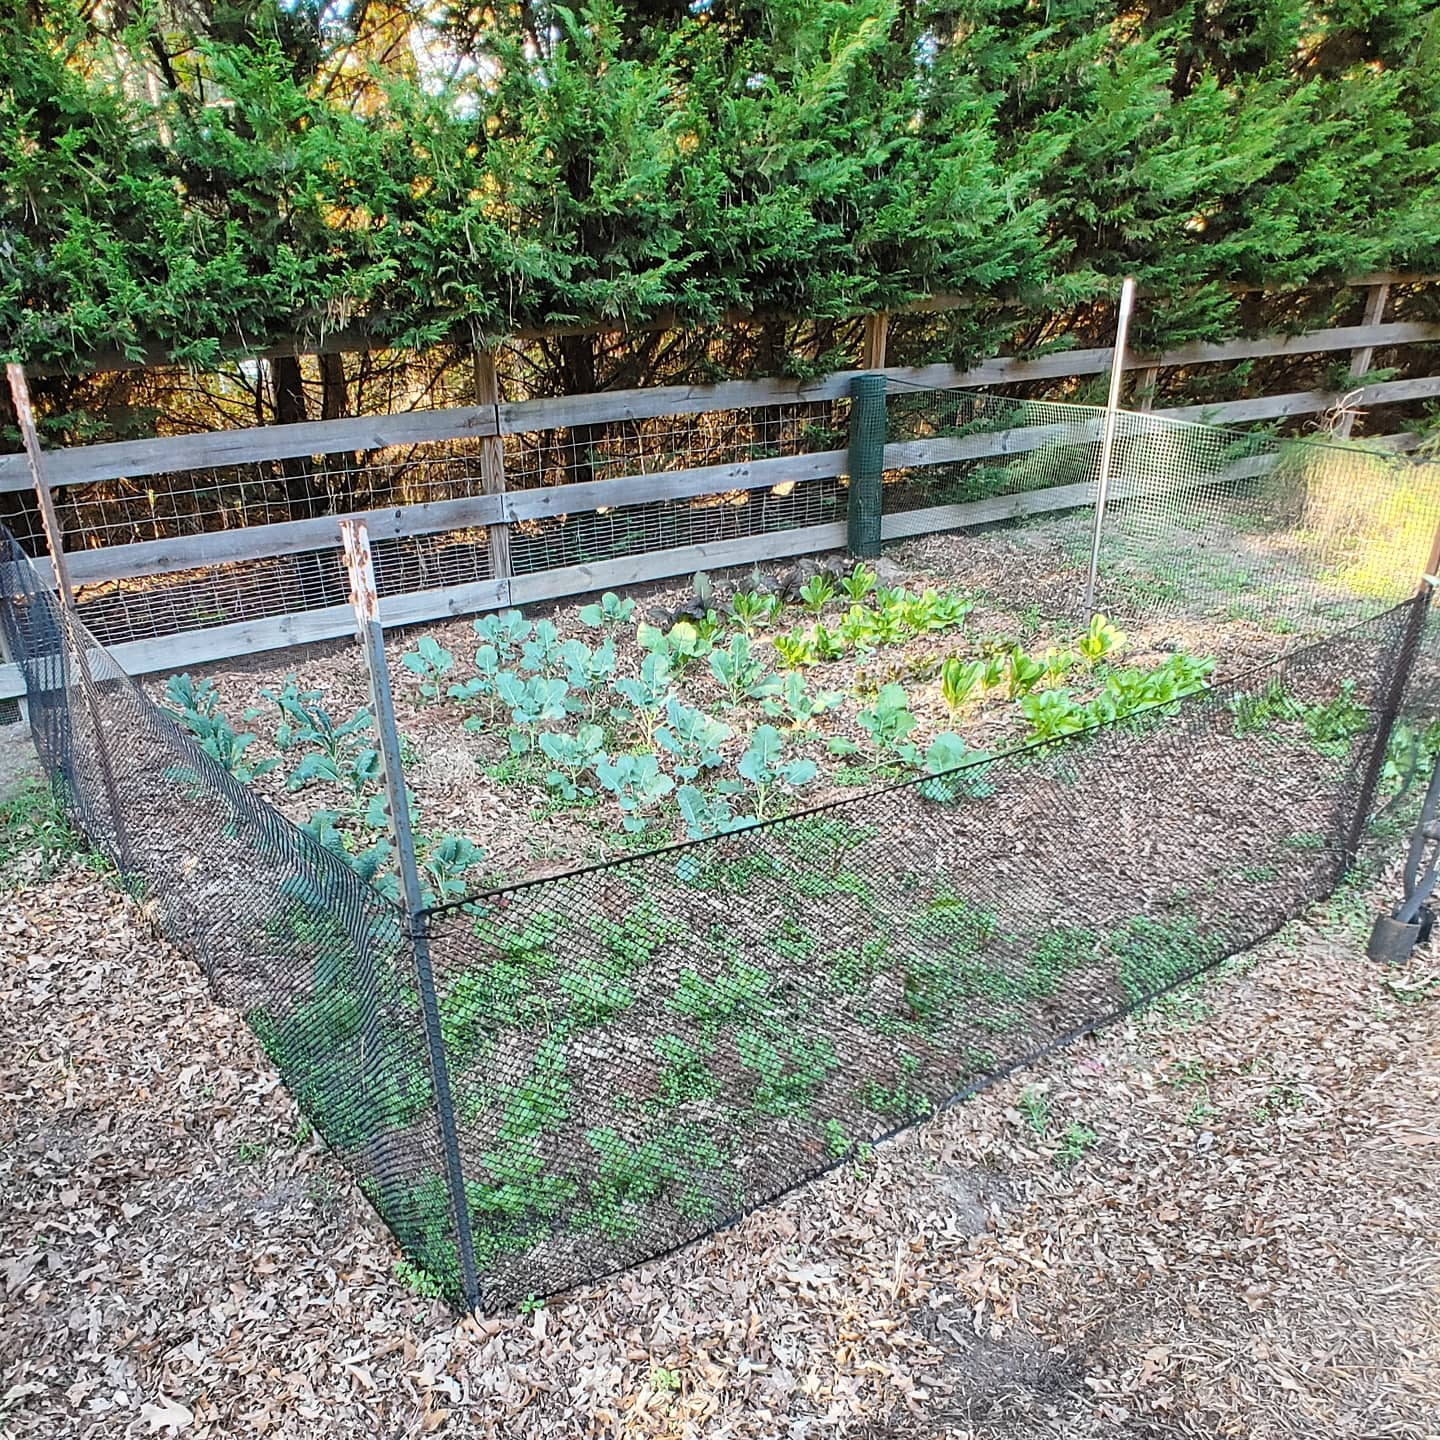 My winter garden looks like a lettuce playpen. I learned the hard way that I must fence in these babies or every hungry critter in the neighborhood will stop by. Broccoli, collards, kale, cabbage, lettuce and celery should keep the chickens and me in greens until spring. The fence stops deer, chickens,  most bunnies and zero squirrels. I would say it is about 10' x 20'.